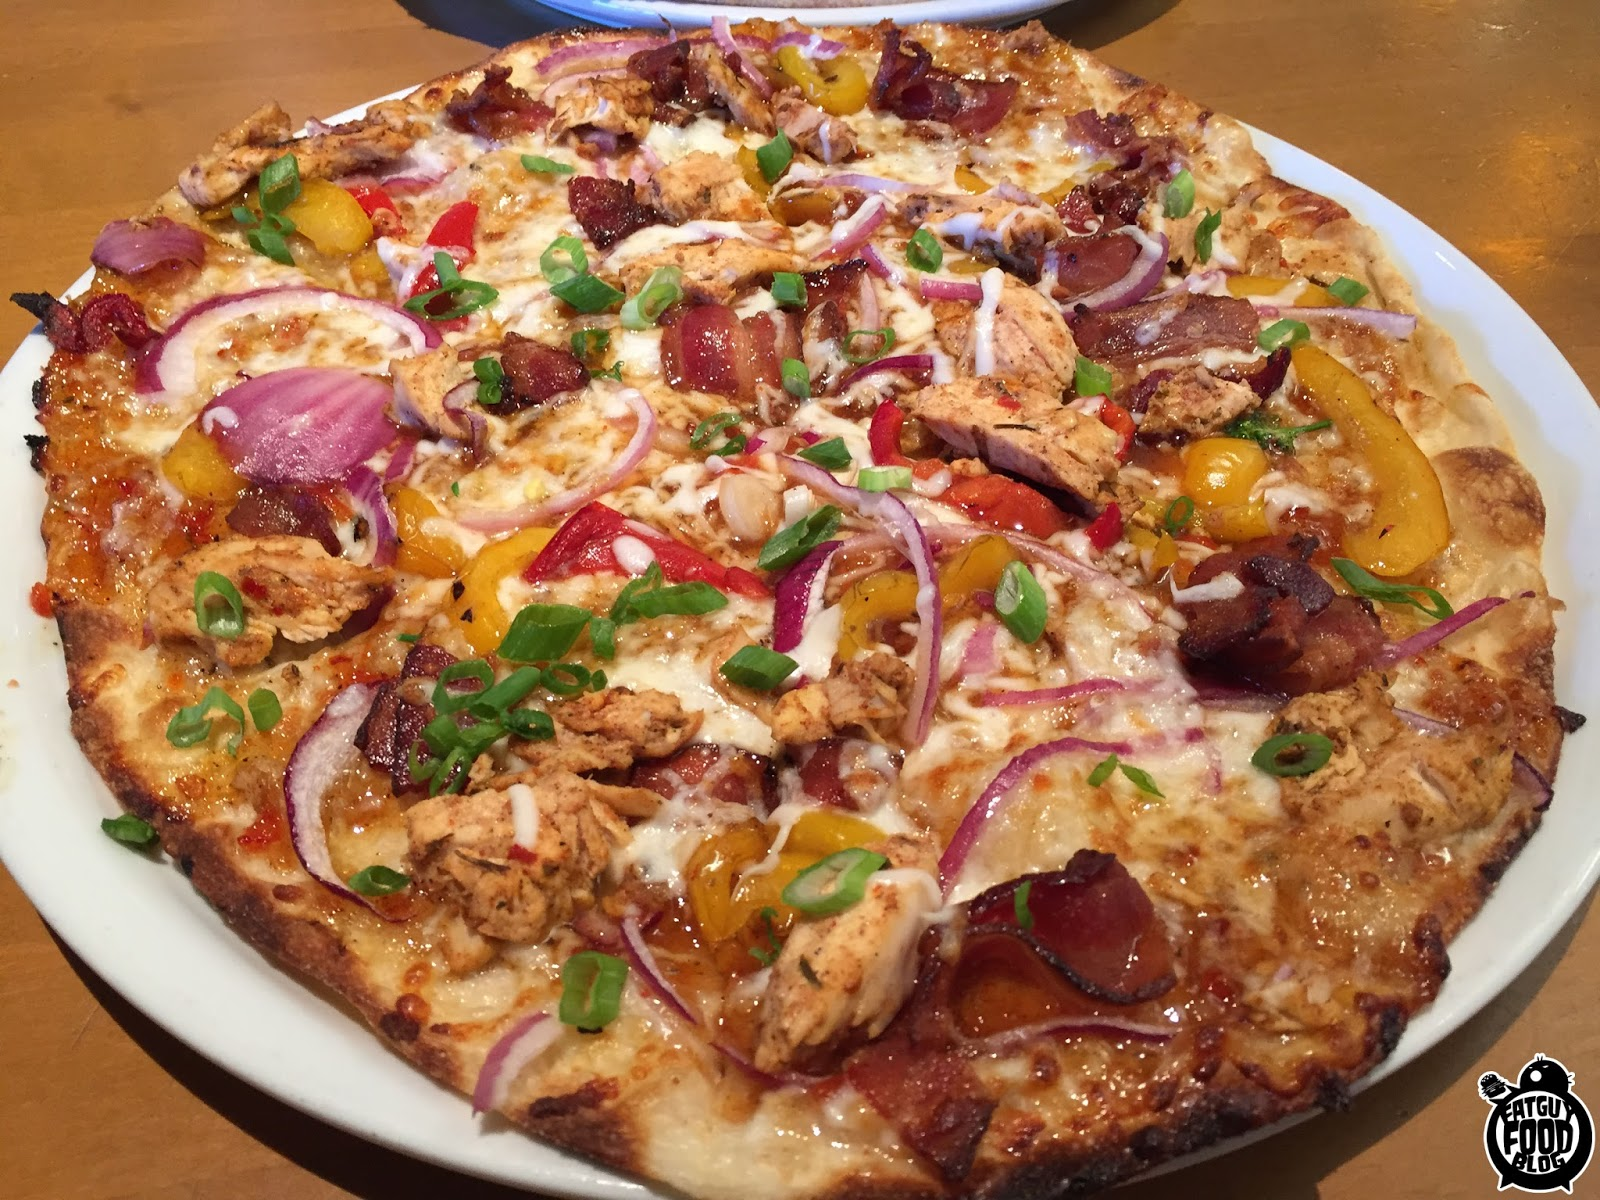 fatguyfoodblog: california pizza kitchen new flavors! the works